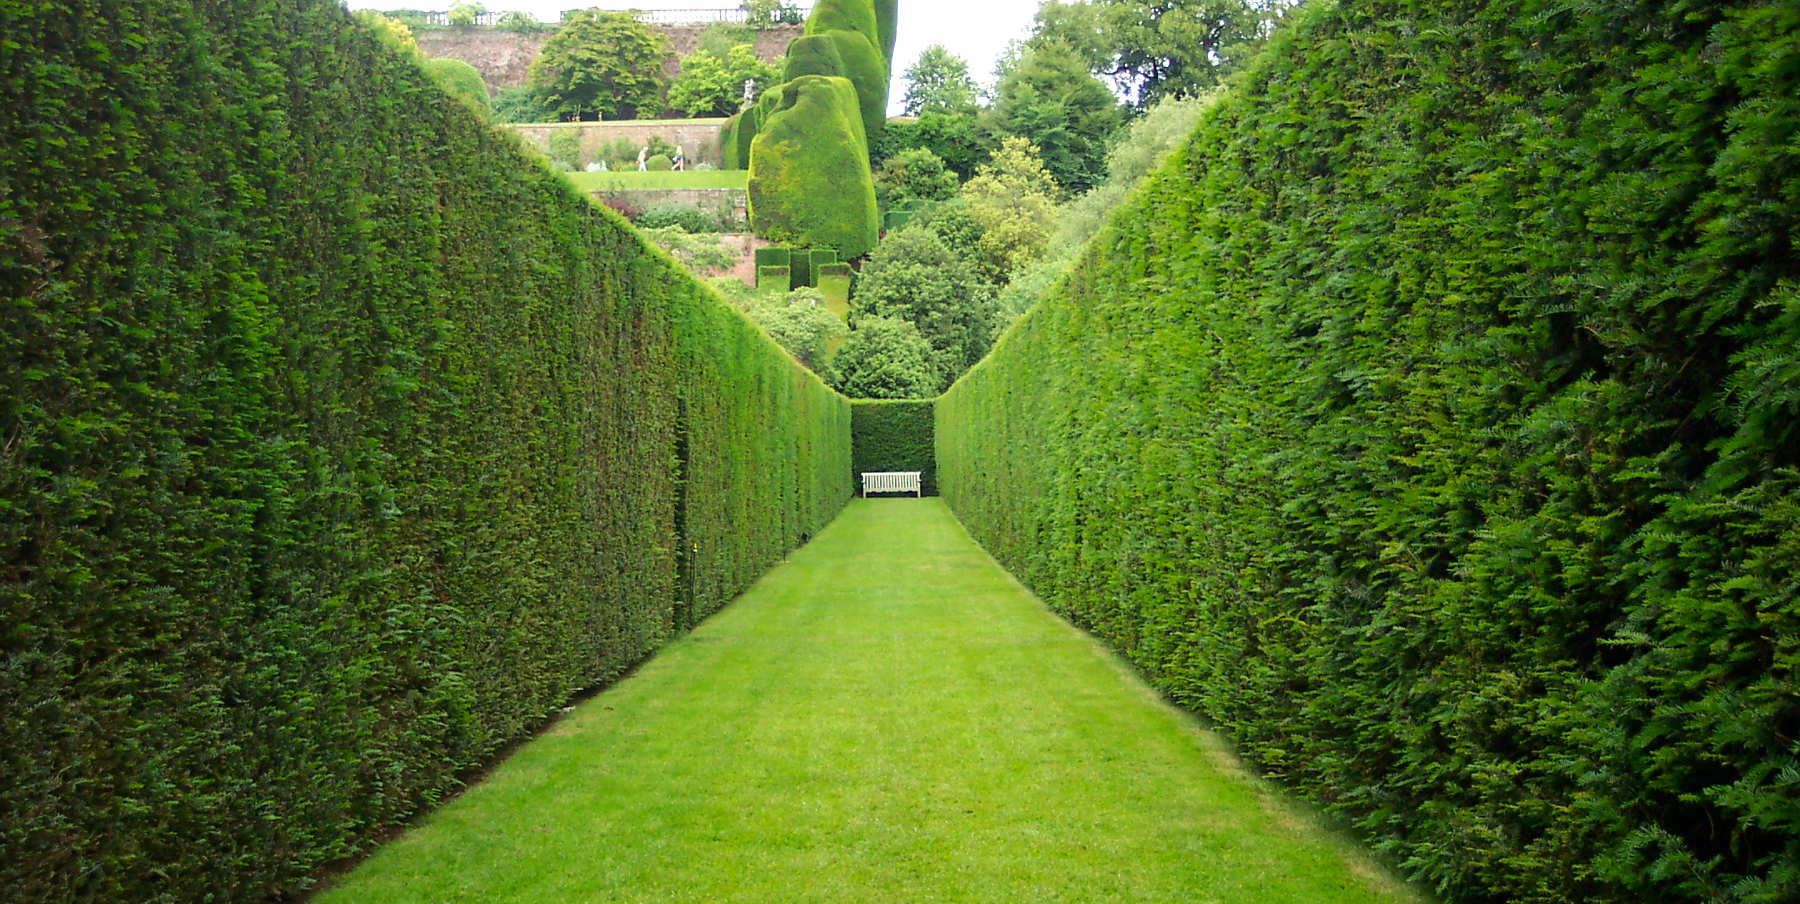 Creating hedges